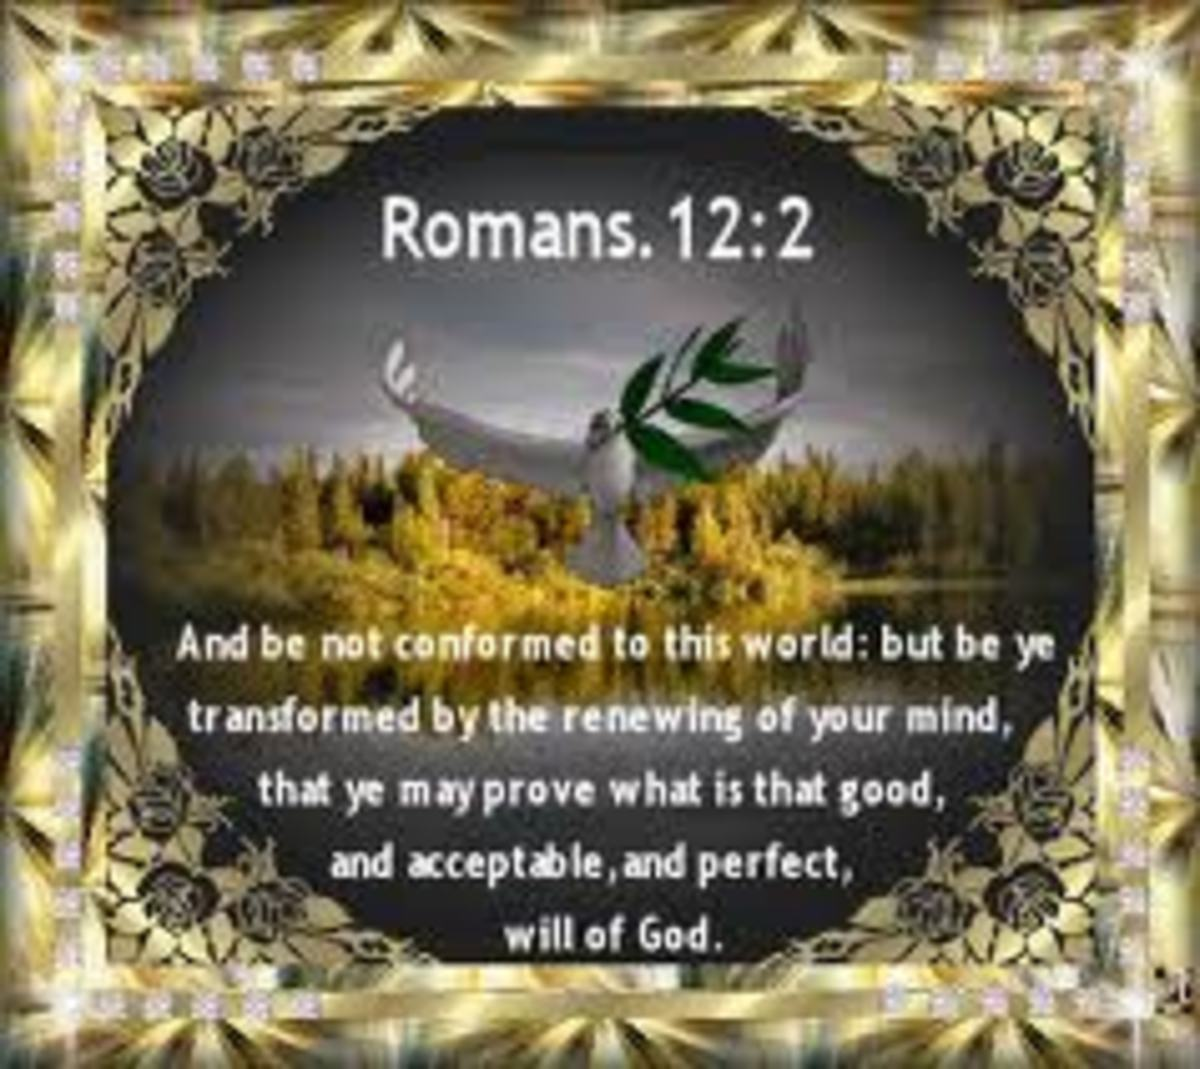 He is not Conformed to the World